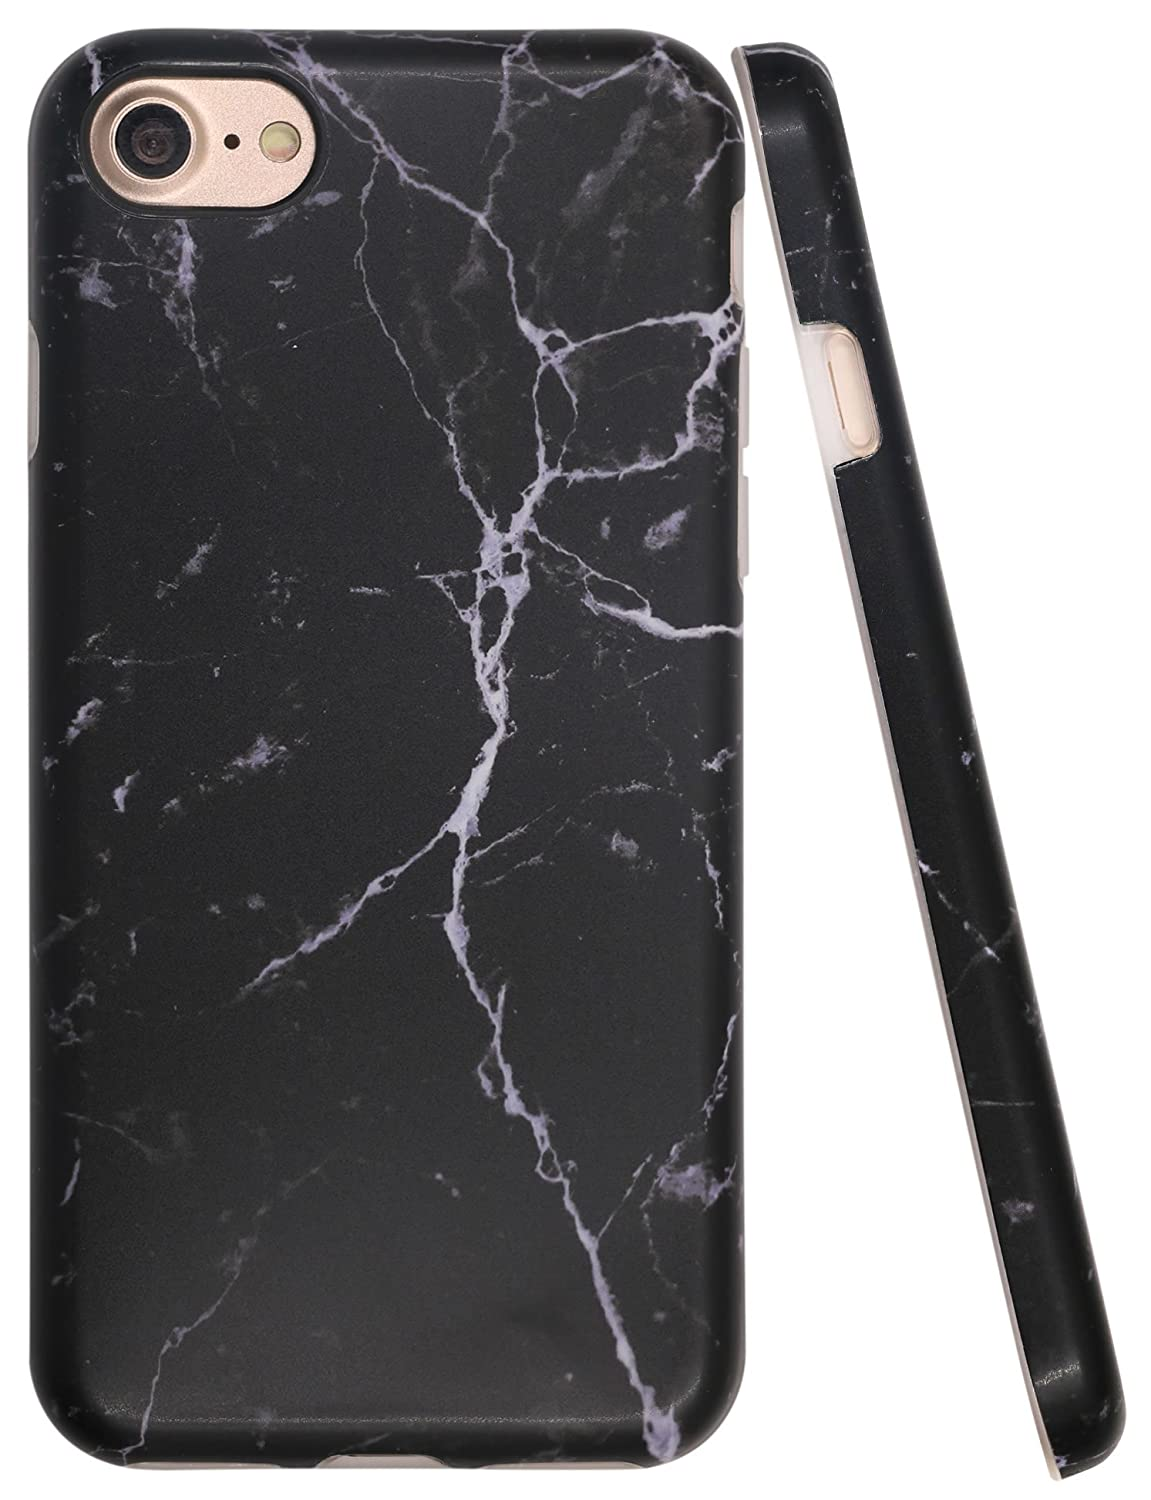 "Iphone 8 Black Case, Iphone 7 Case Marble Pattern, A Focus Stone Imd Anti Scratch Anti Finger Slim Fit Soft Flexible Rubber Cover Case For Iphone 7 / Iphone 8 4.7""   Matte Black by A Focus"